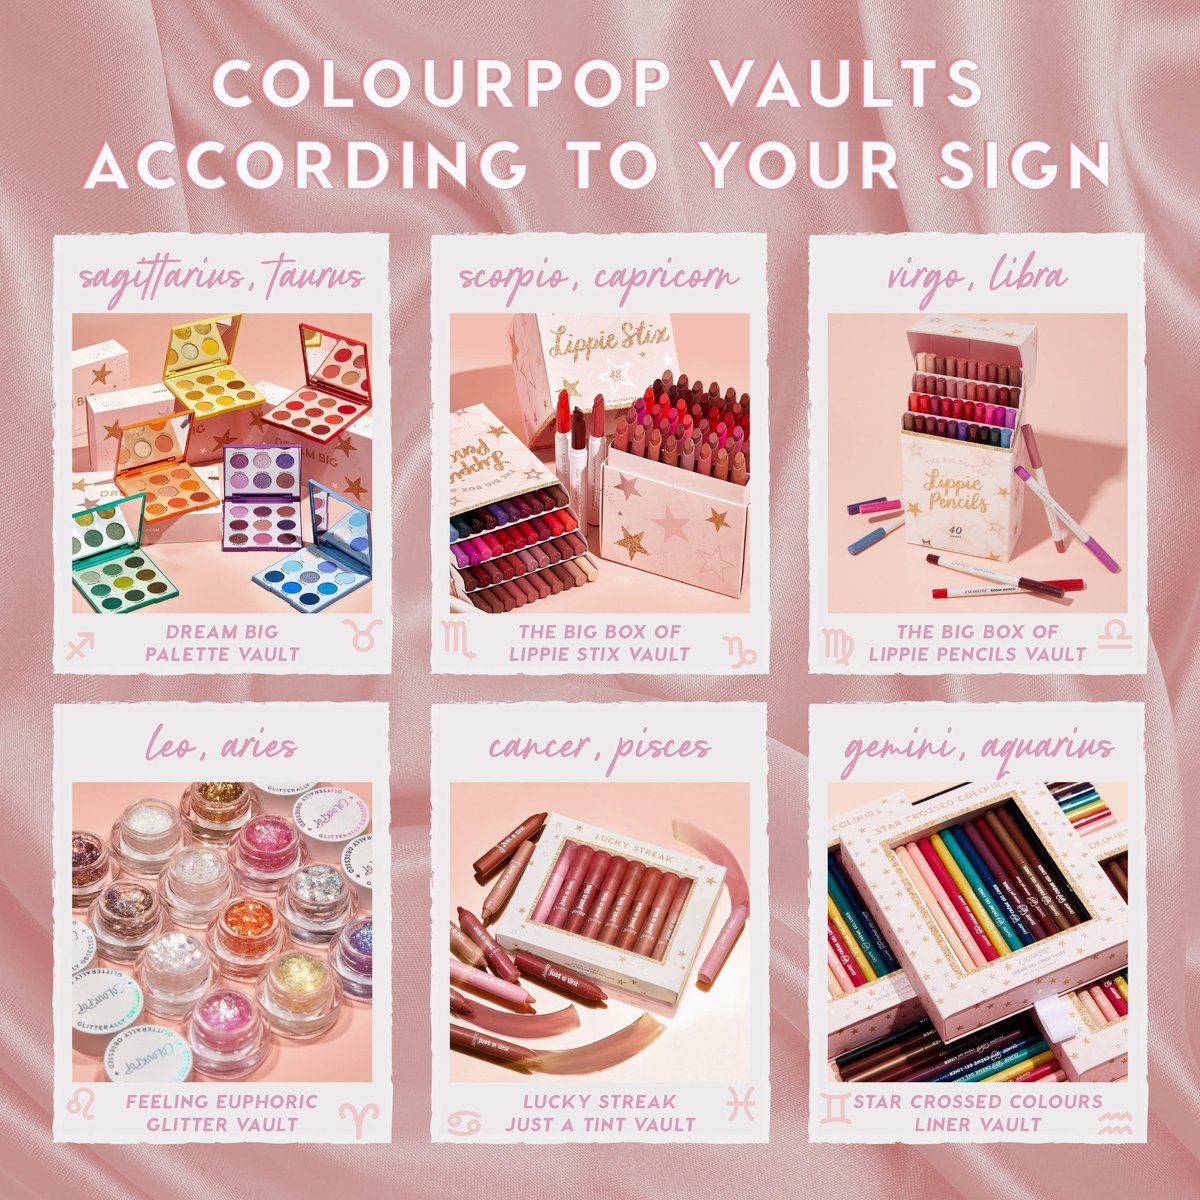 #GIVEAWAY  All of our VAULTS are BACK! & we're giving away ALL SIX VAULTS to one lucky winner! To enter, all you have to do is:  ✨Like & RT ✨Follow @ColourPopCo  ✨reply w/your zodiac sign